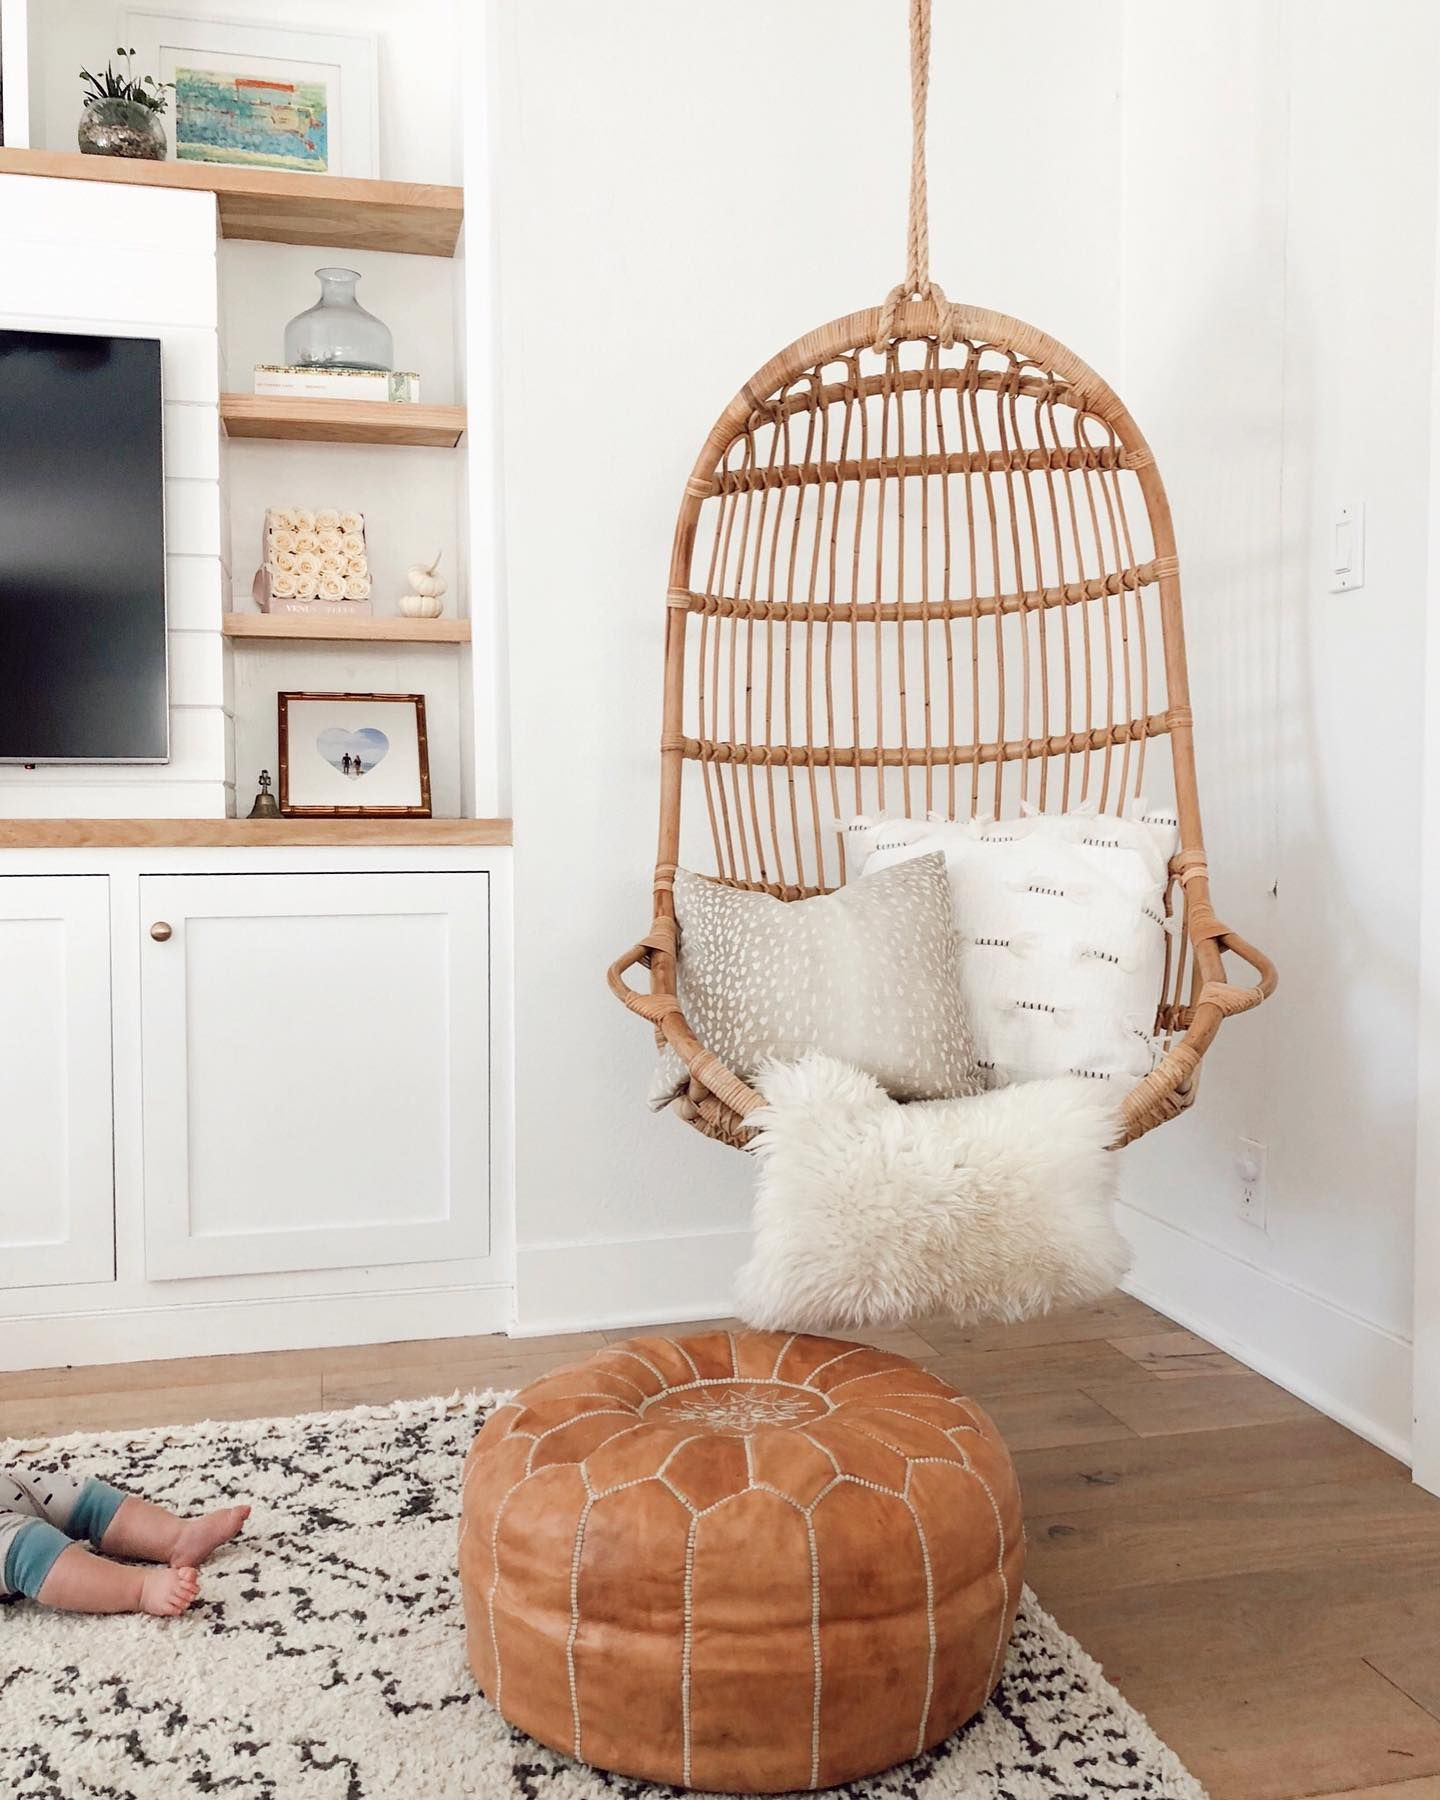 Hanging Rattan Chair In 2020 Bedroom Hanging Chair Room Swing Hanging Rattan Chair